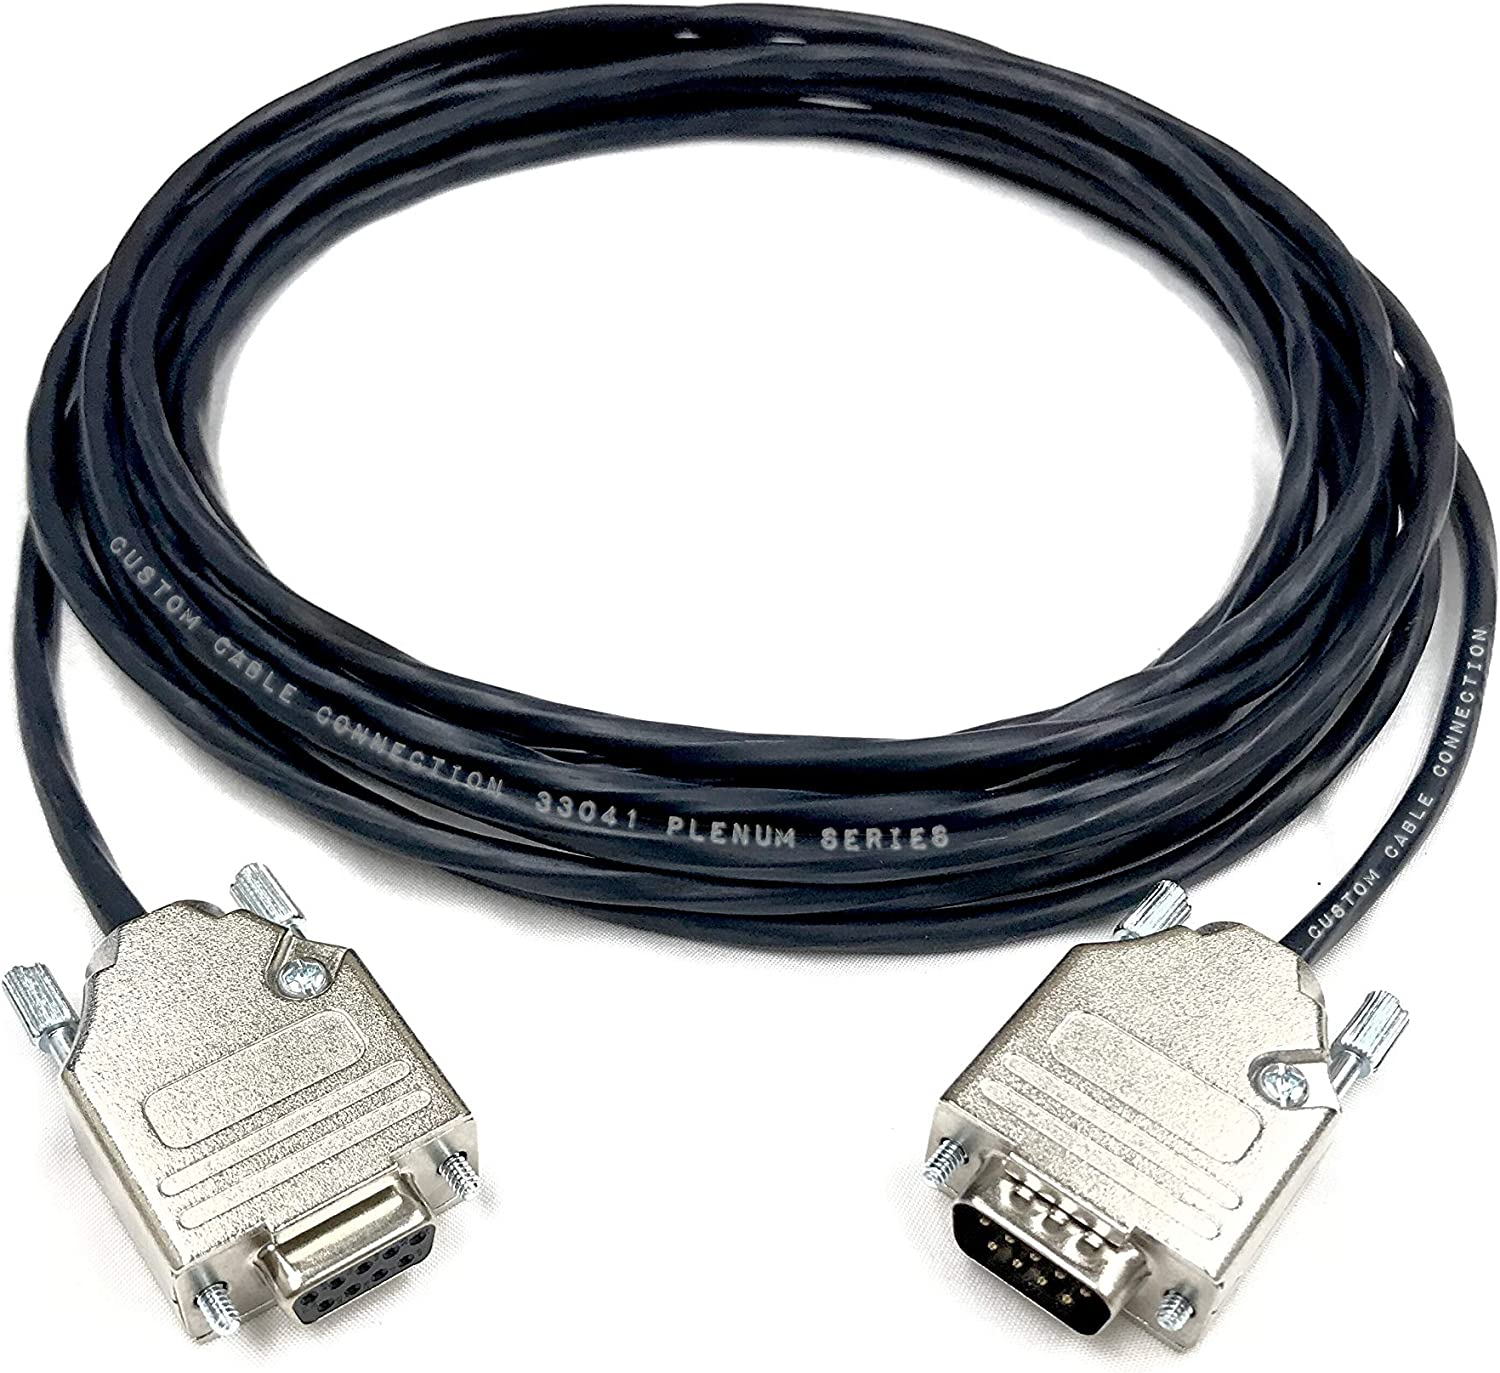 3 Foot DB9 Male to Female RS232 Plenum Extension Serial Cable Made in The USA by Custom Cable Connection 22 AWG with Plenum Black Jacket